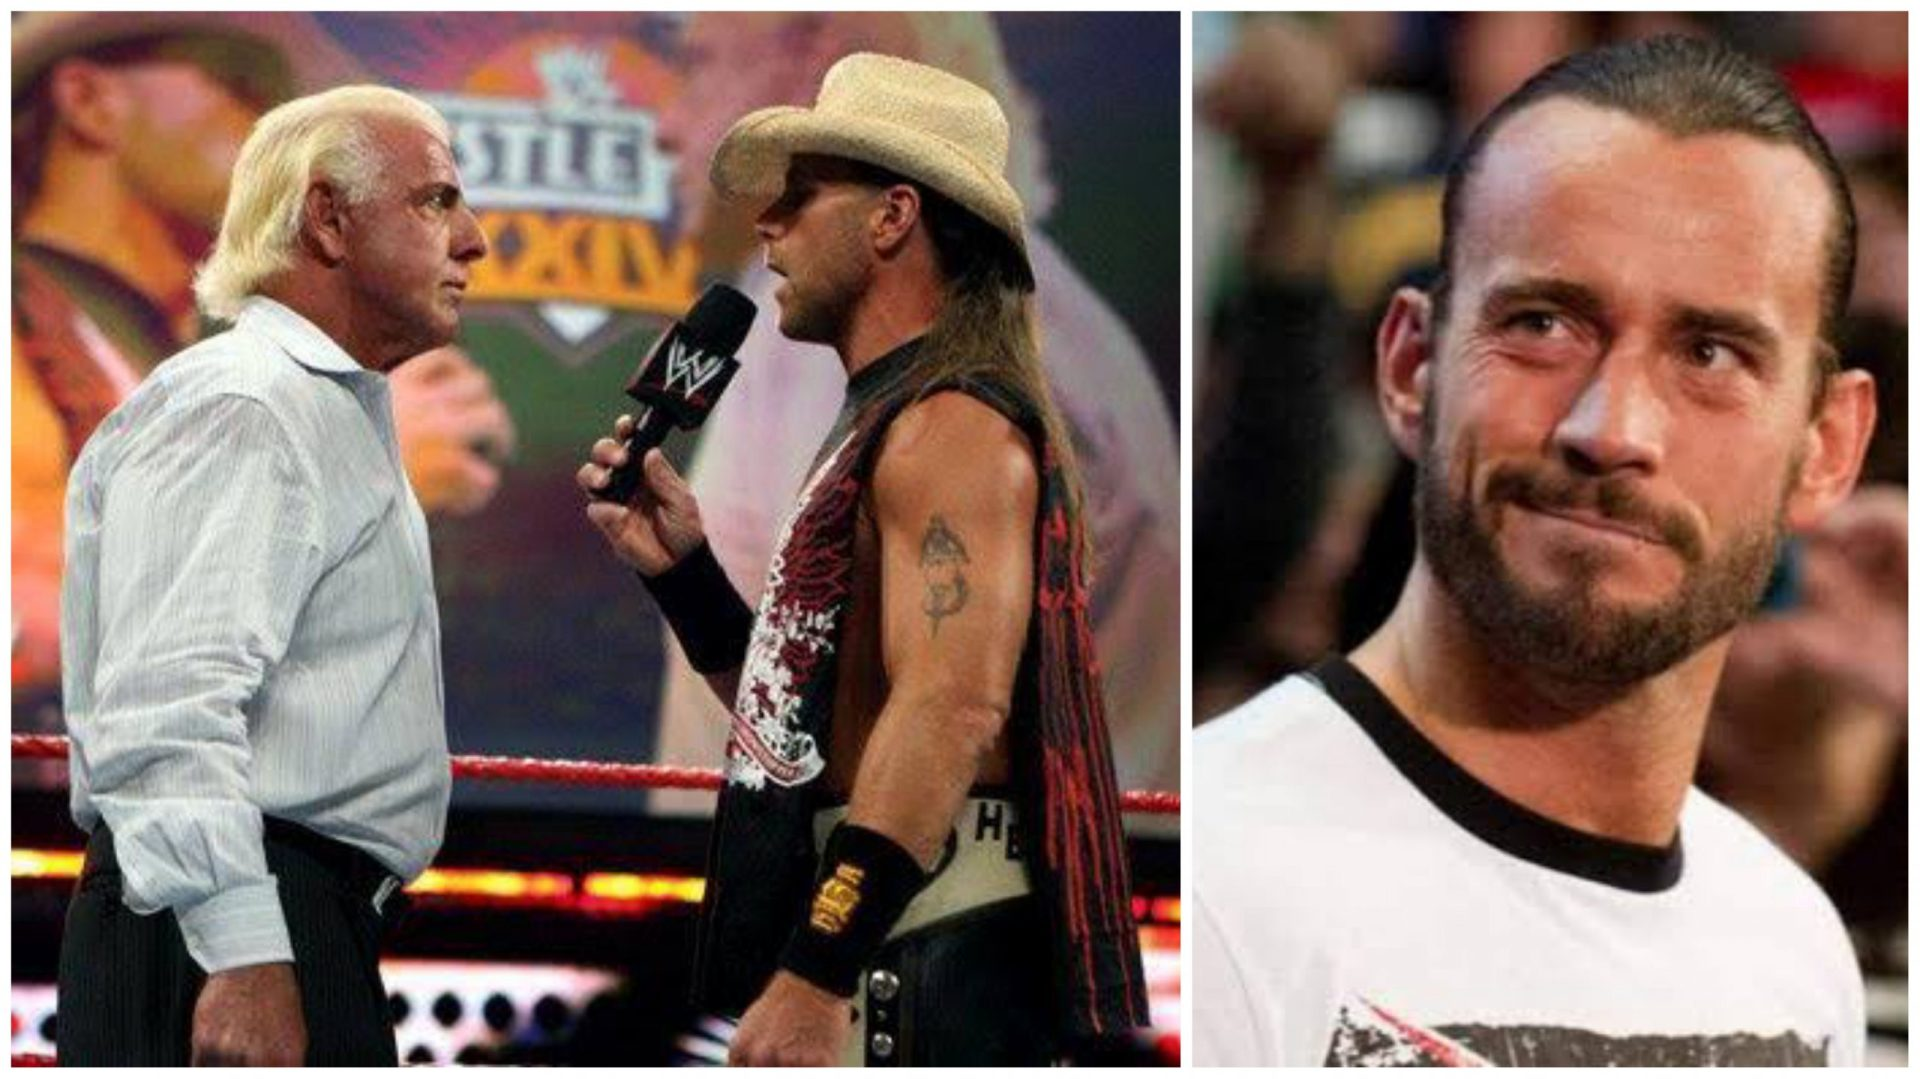 CM Punk disagrees to Ric Flair calling HBK the greatest in-ring performer of all time - THE SPORTS ROOM